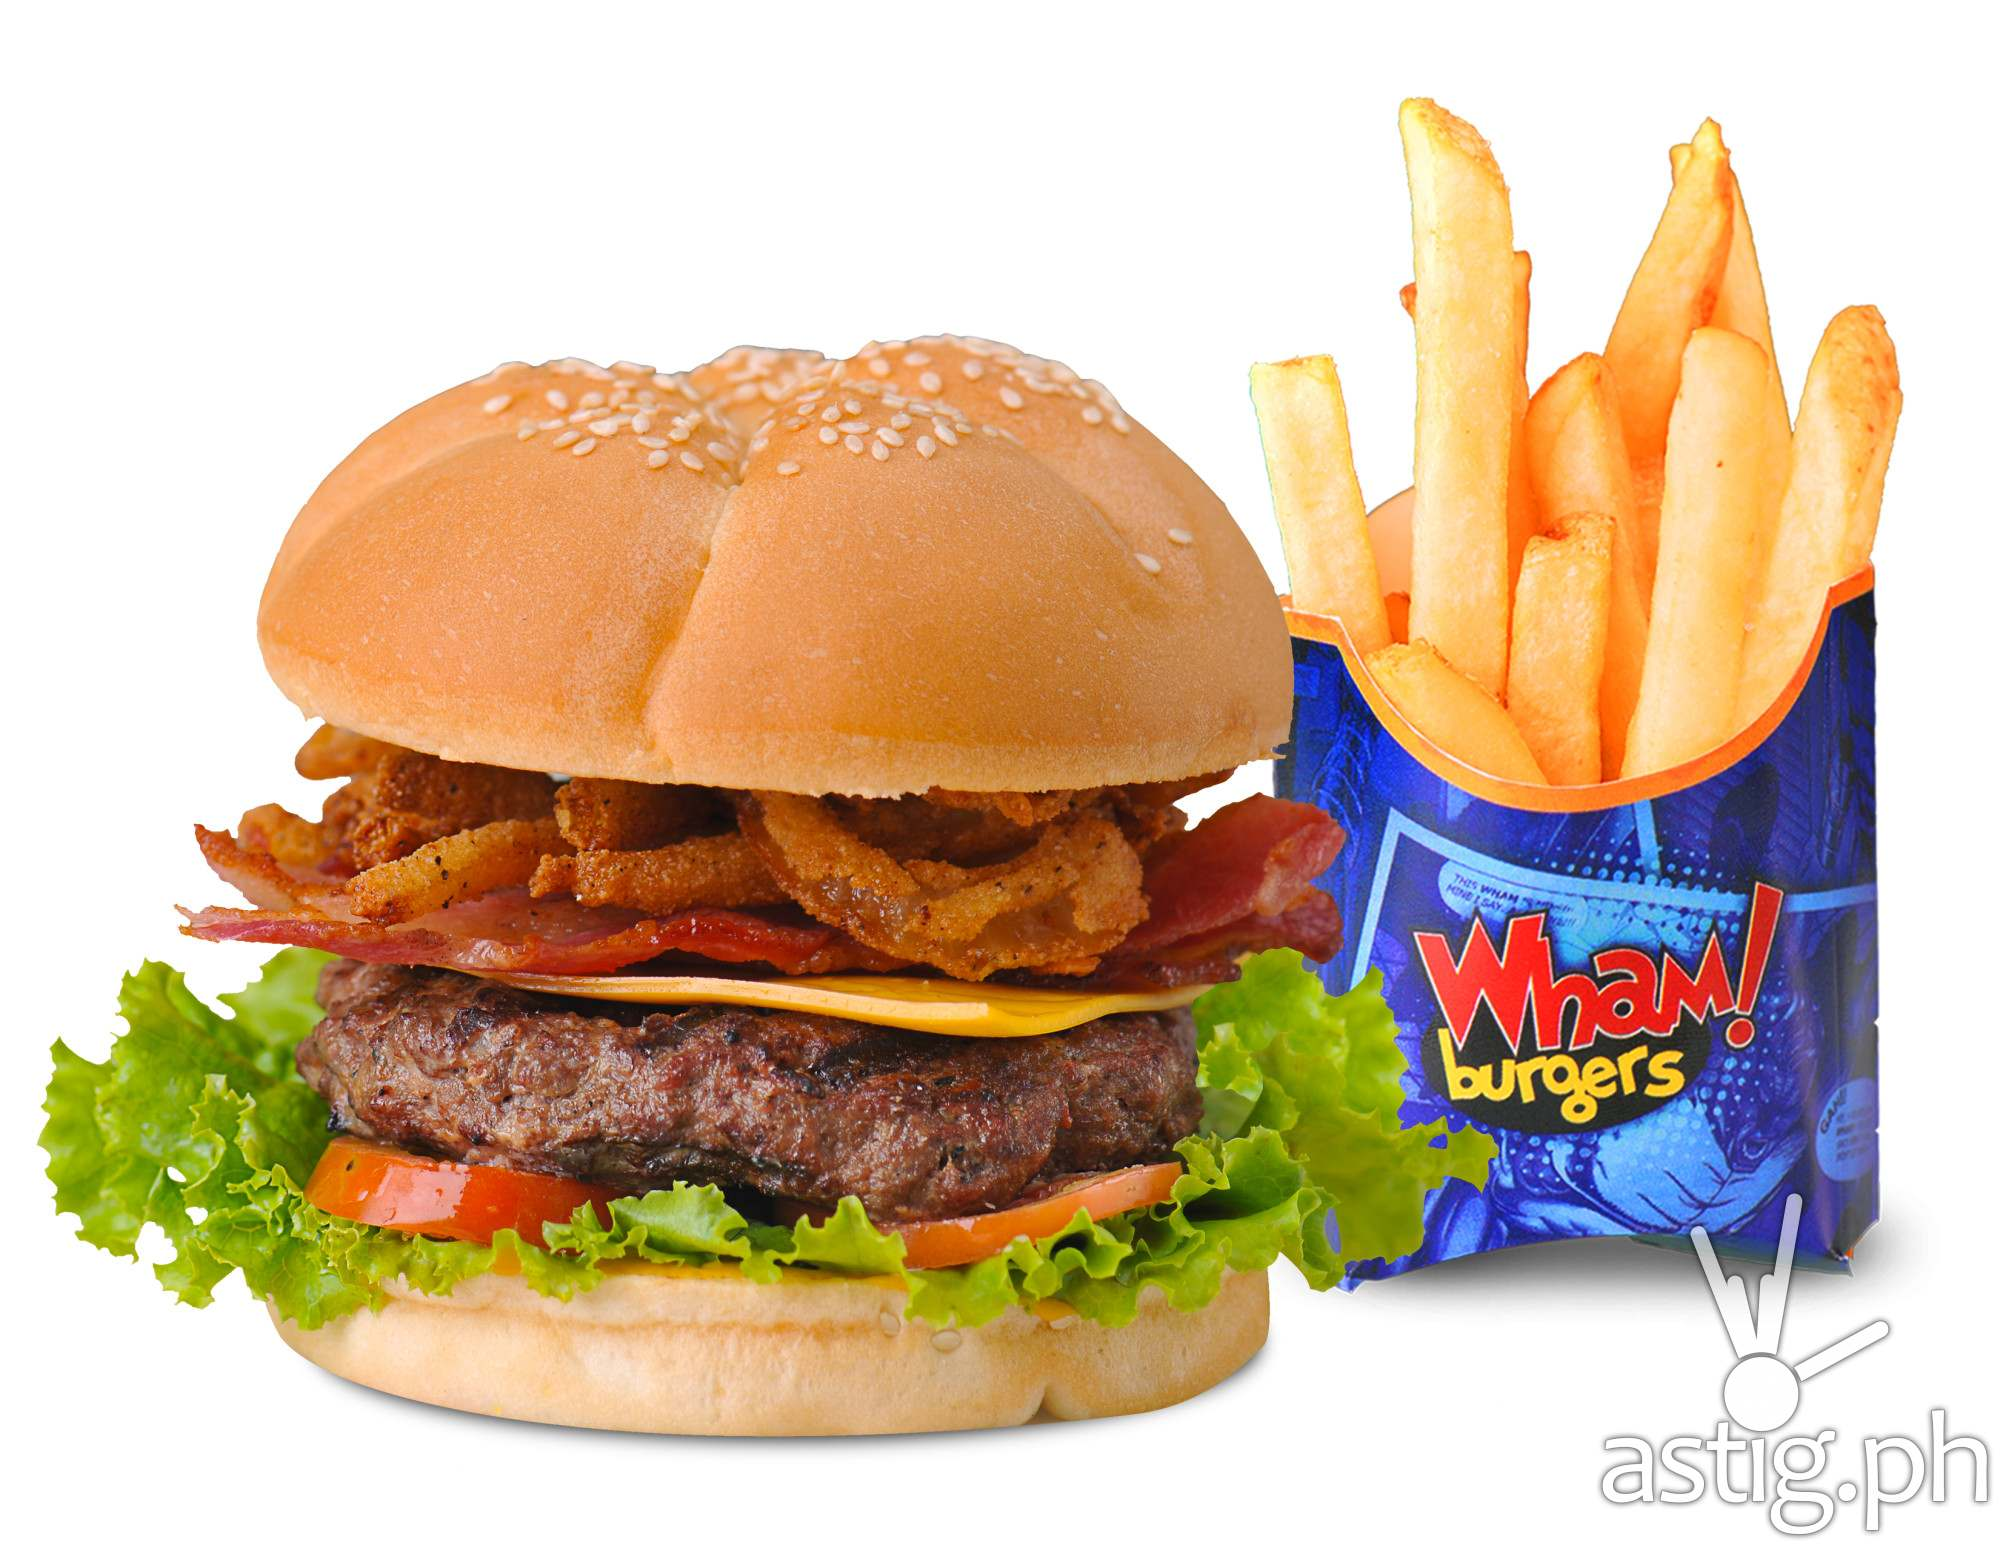 Wham! burger with fries